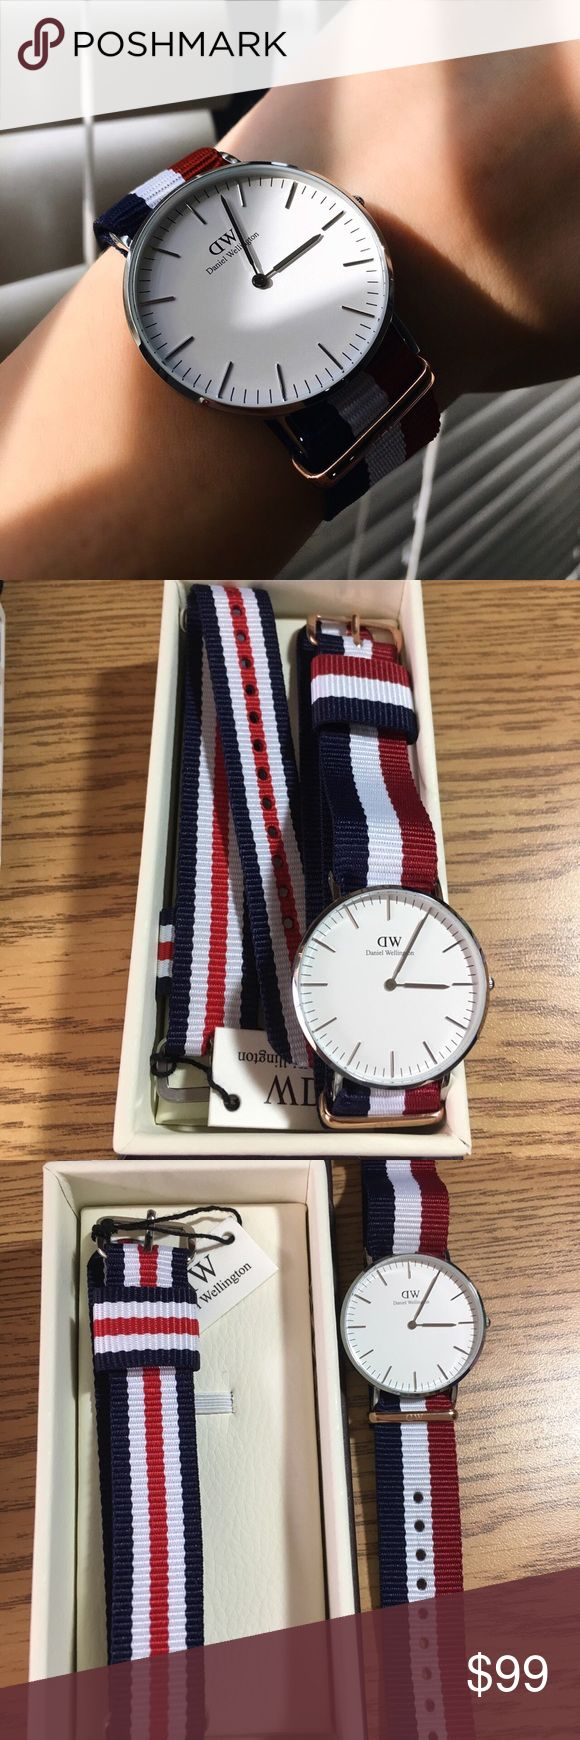 New Daniel Wellington watch New Daniel Wellington watch, comes with 2 straps in an original pack. Price on the website - 199$, my price - 70$.  #danielwellington #watch #sale Accessories Watches